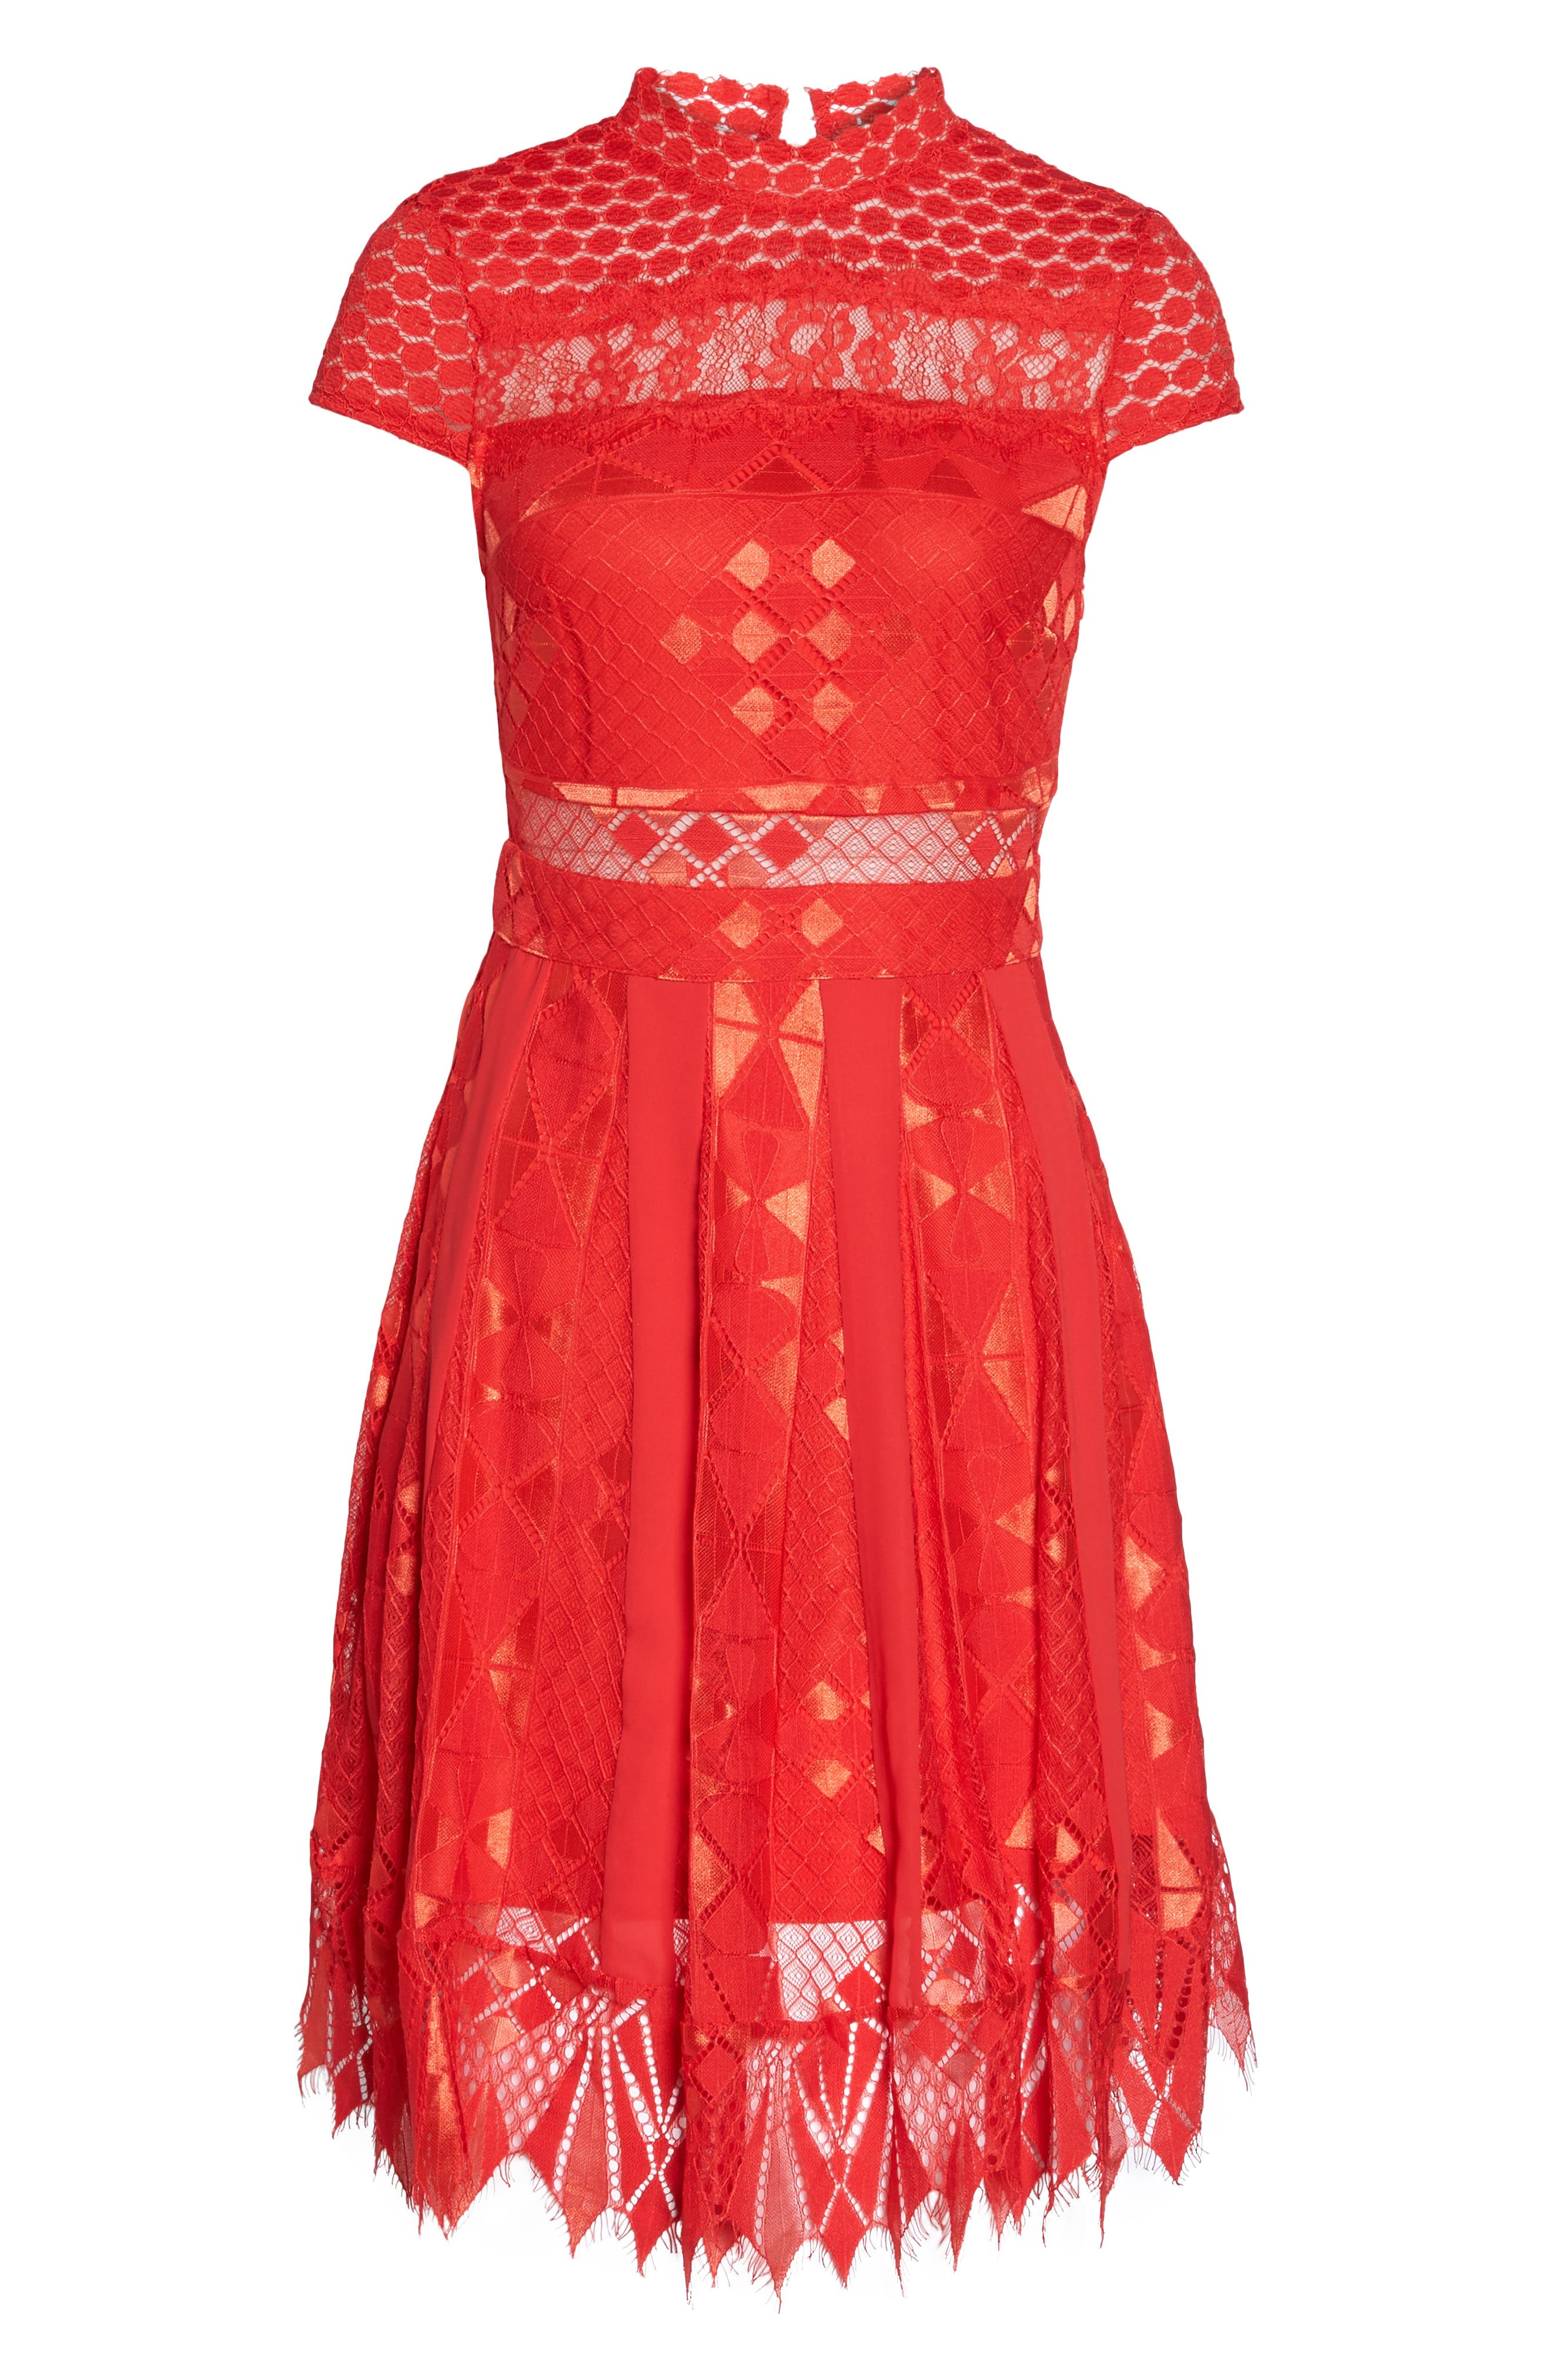 Bravo Zulu Lace Fit & Flare Dress,                             Alternate thumbnail 6, color,                             Red Blush